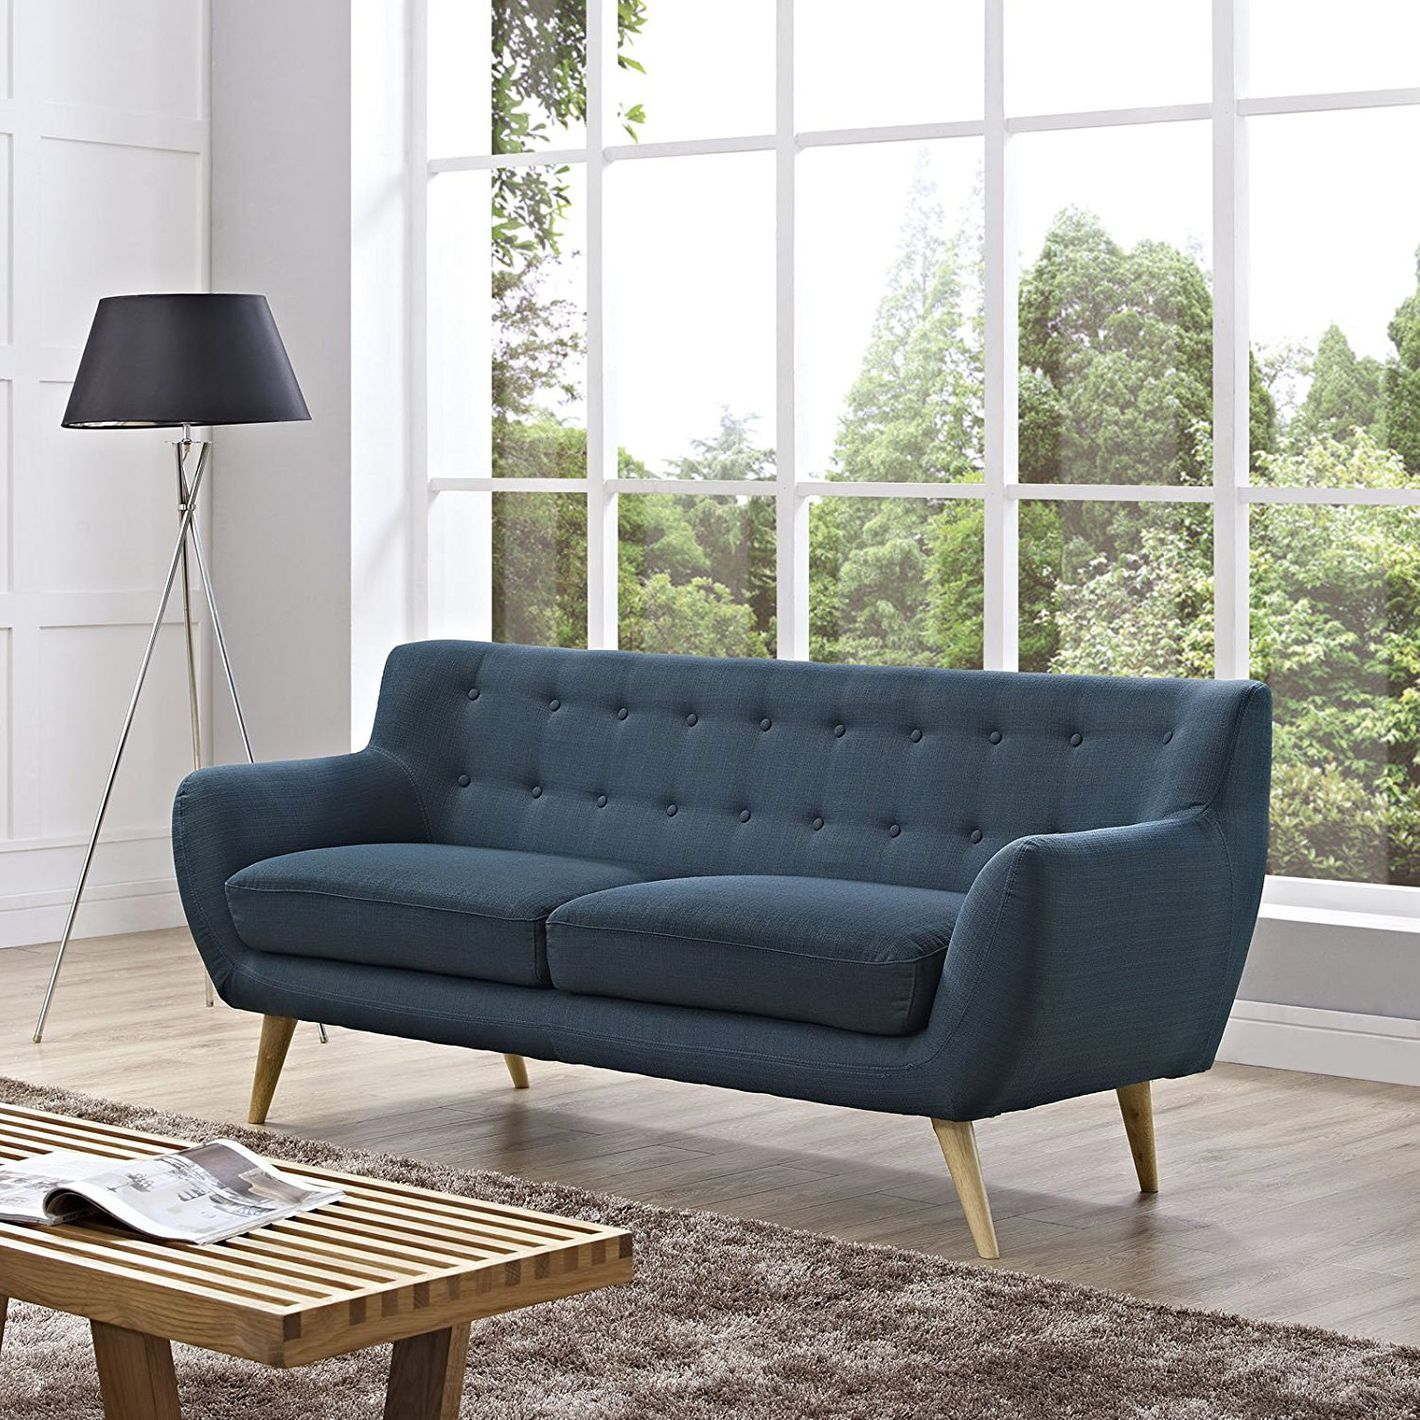 The Best Sofas Under $500 Plus a Few Under $1000